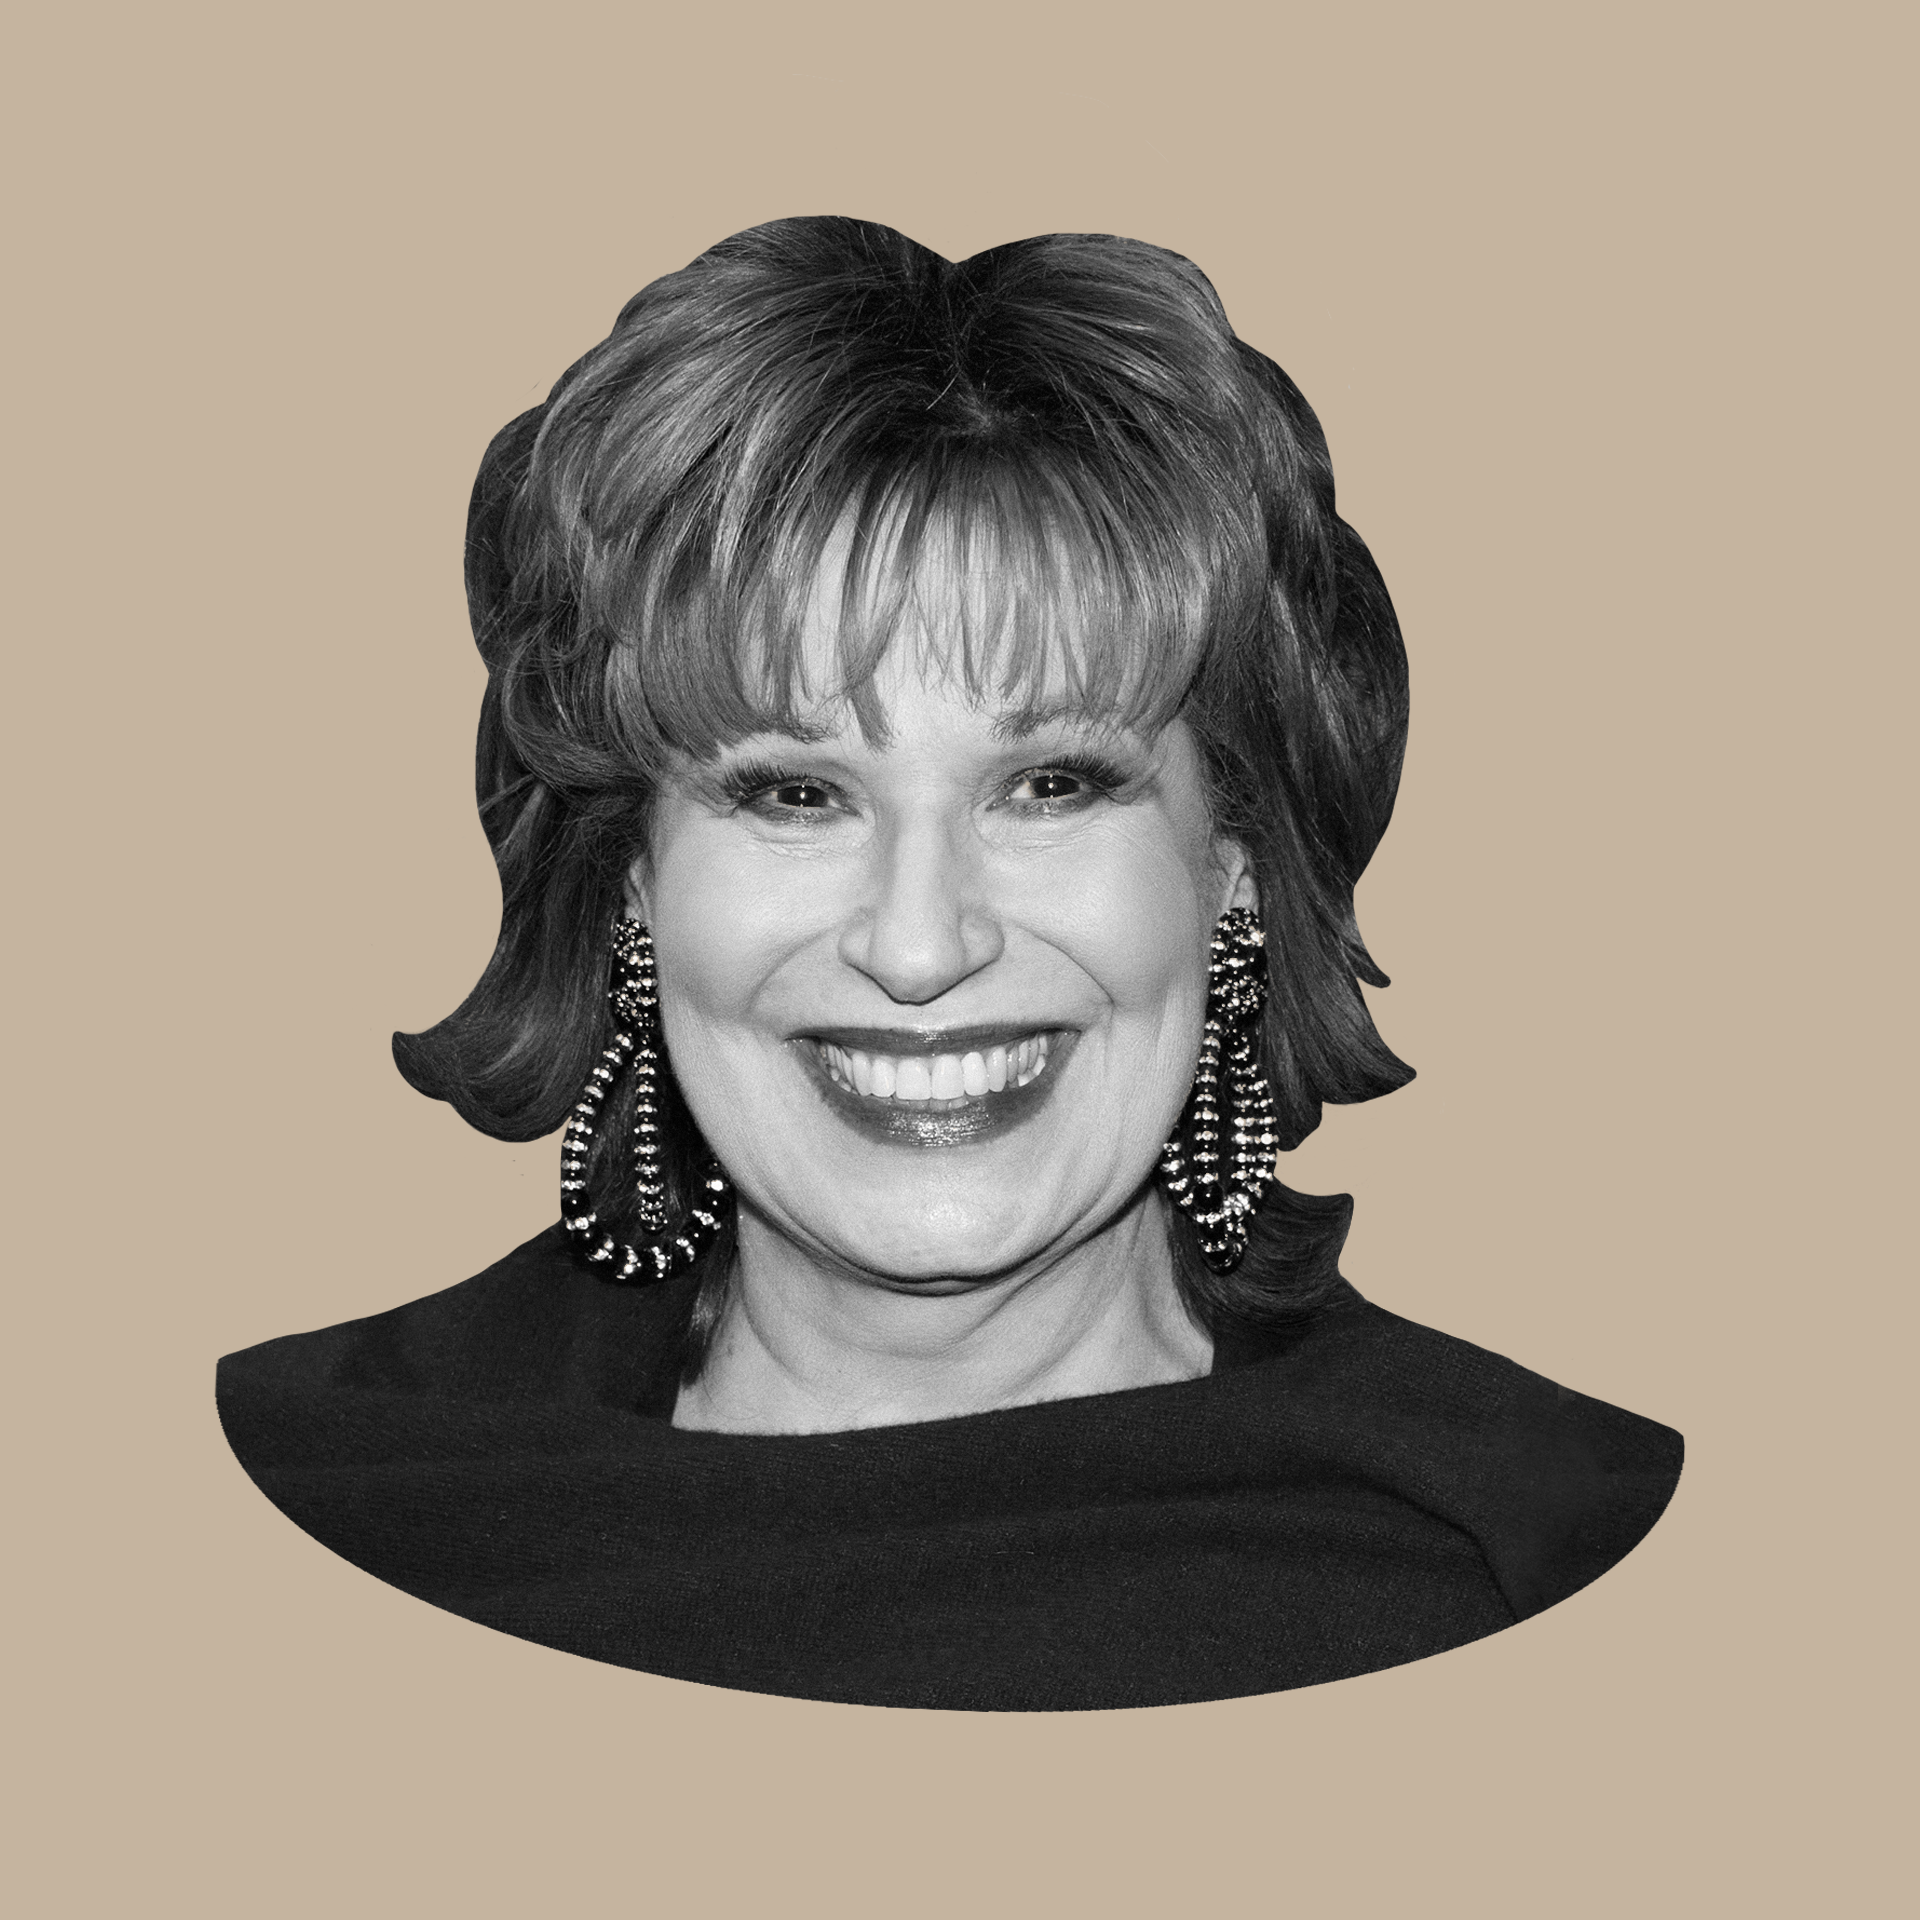 Headshot of Joy Behar